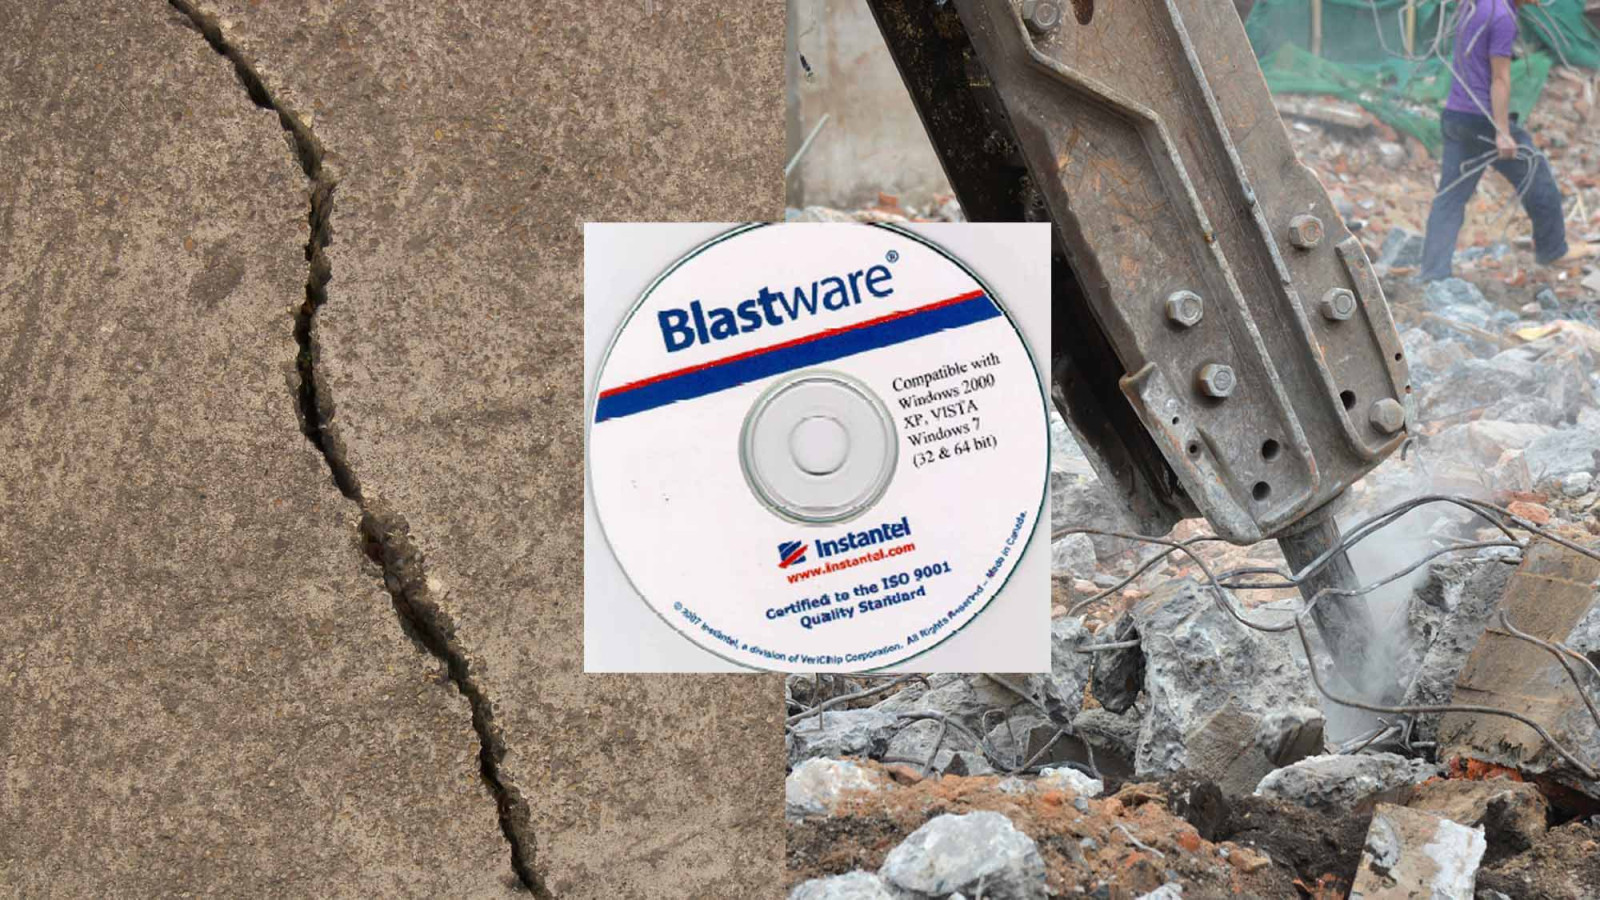 Blastware Course Software